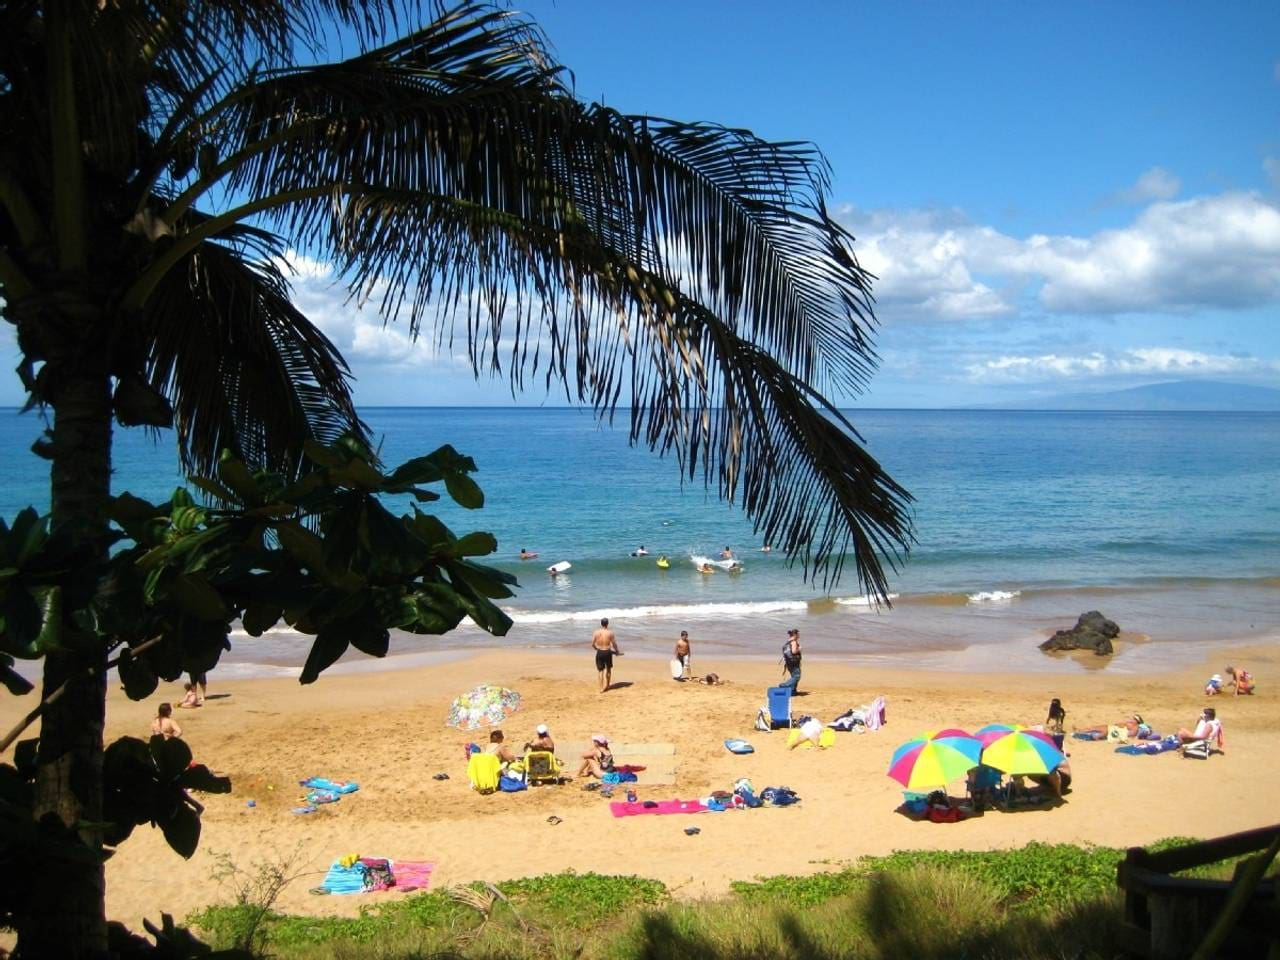 Our beach-beautiful, whitesand Kamaole 3 is just a few steps from our condo